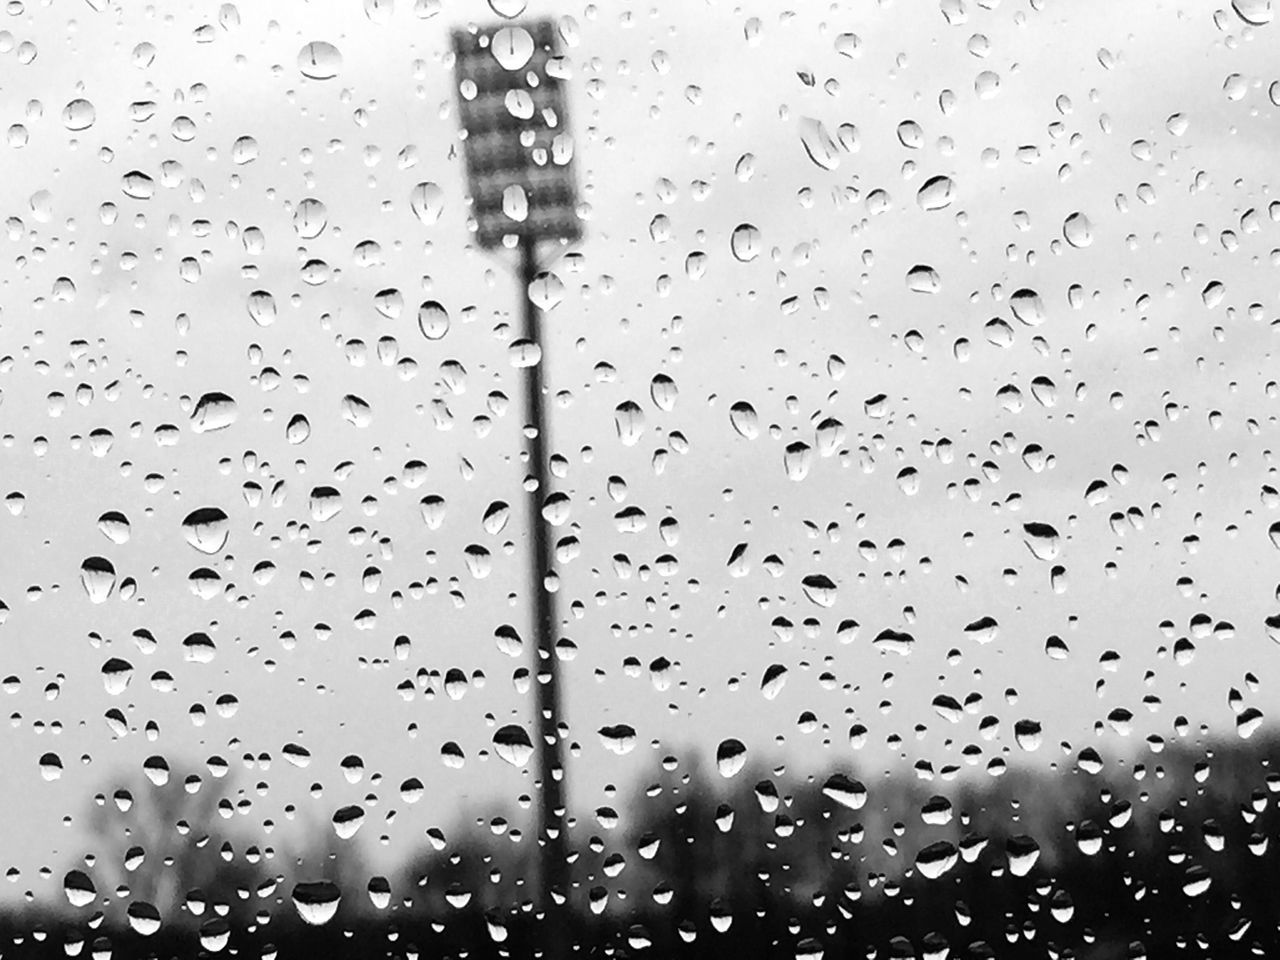 Rany Day Monochrome Simplicity Rain Drops IPhoneography The View From My Window Hi! Blackandwhite Ruhrgebiet Minimalism Pattern Pieces